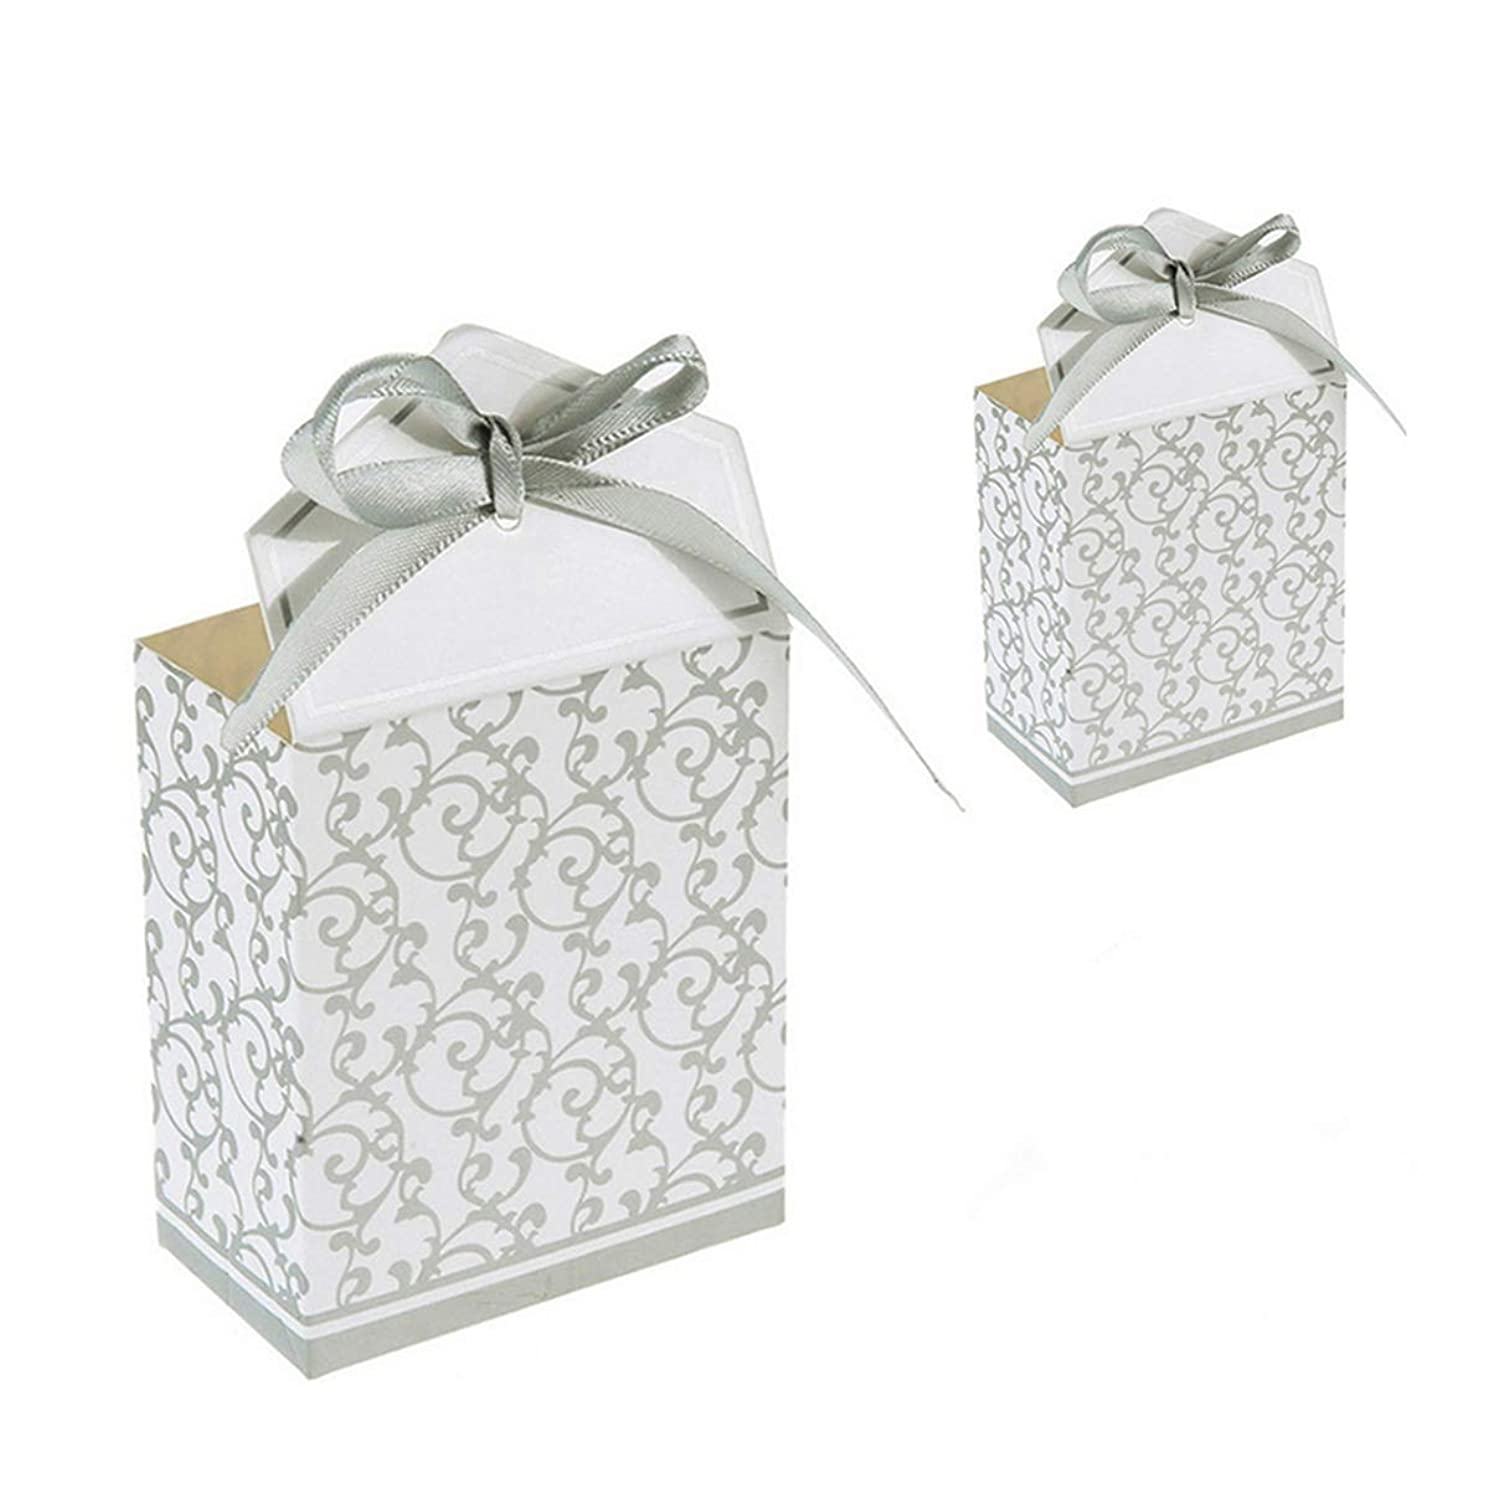 50 Pcs Silver Candy Boxes Gift Boxes Cake Boxes Candy Bag with Gift Ribbons for Wedding Favor Birthday Party Bridal Shower